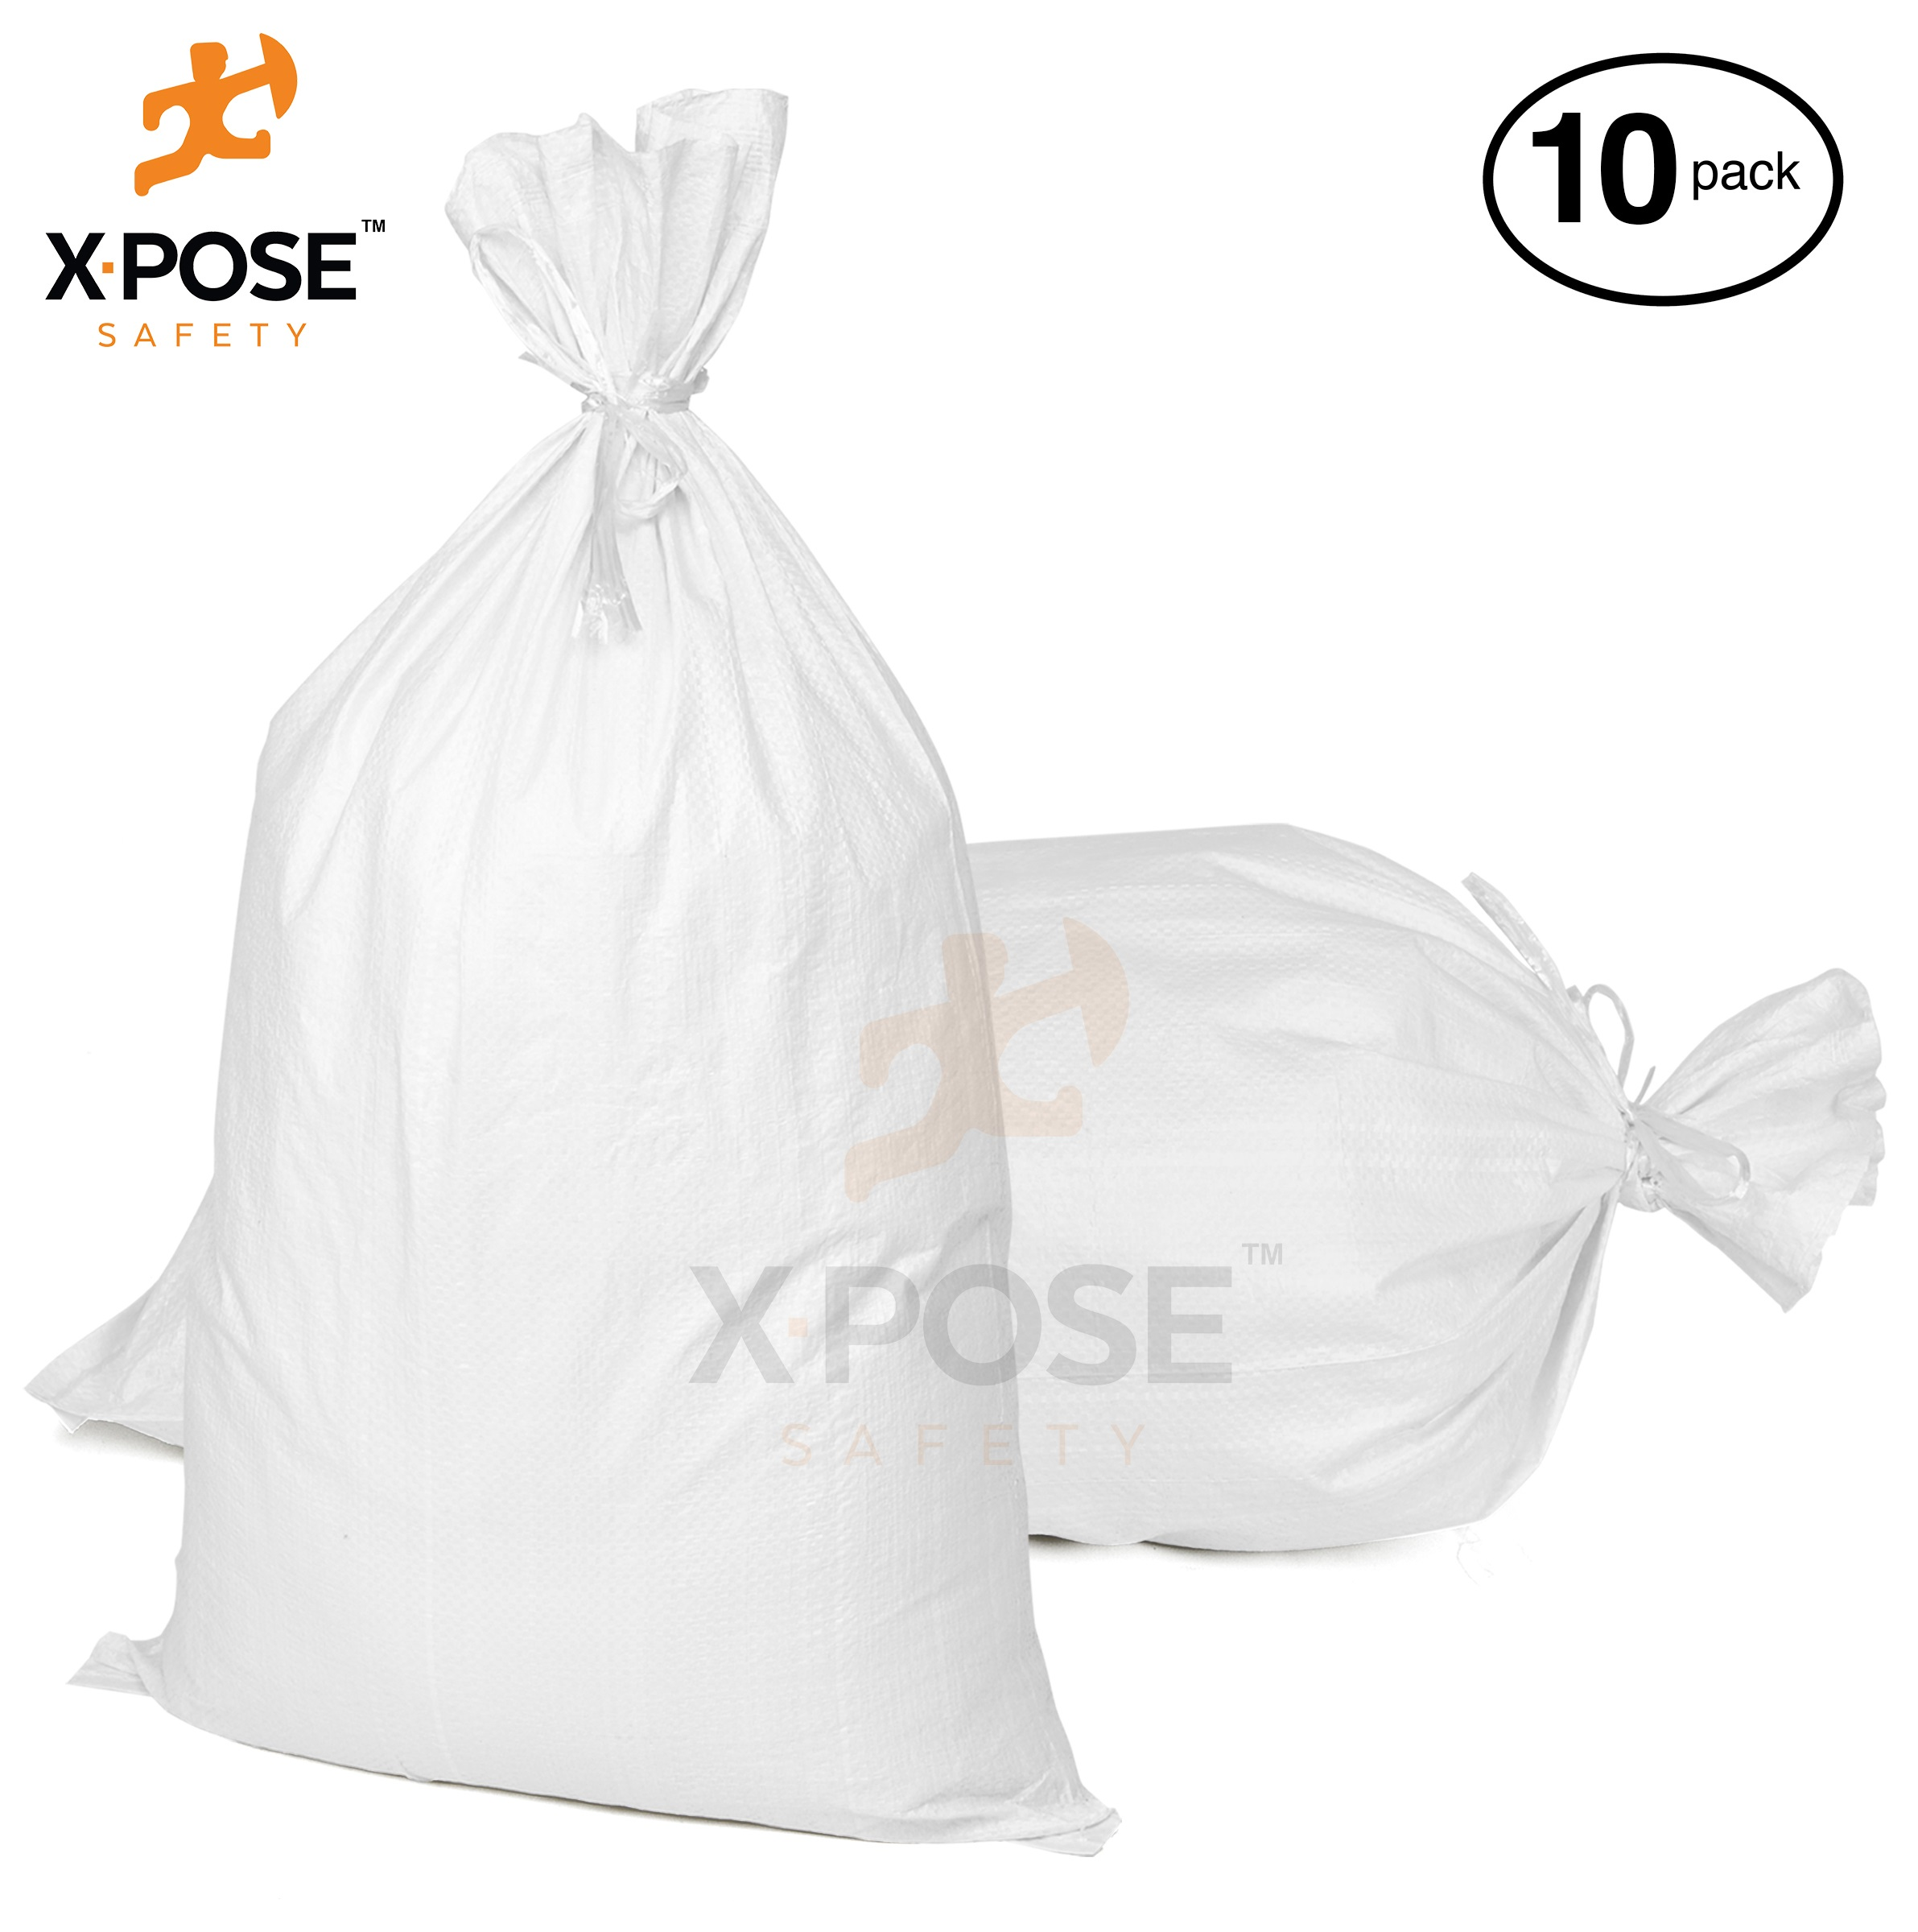 "18"" x30"" Empty Sand Bags, 10 Pack with Ties Heavy Duty Woven Polypropylene, UV Sun Protection, Dust, Water and Oil Resistant - Home and Industrial - Floods, Photography and More - by Xpose Safety WSB-1830-10"